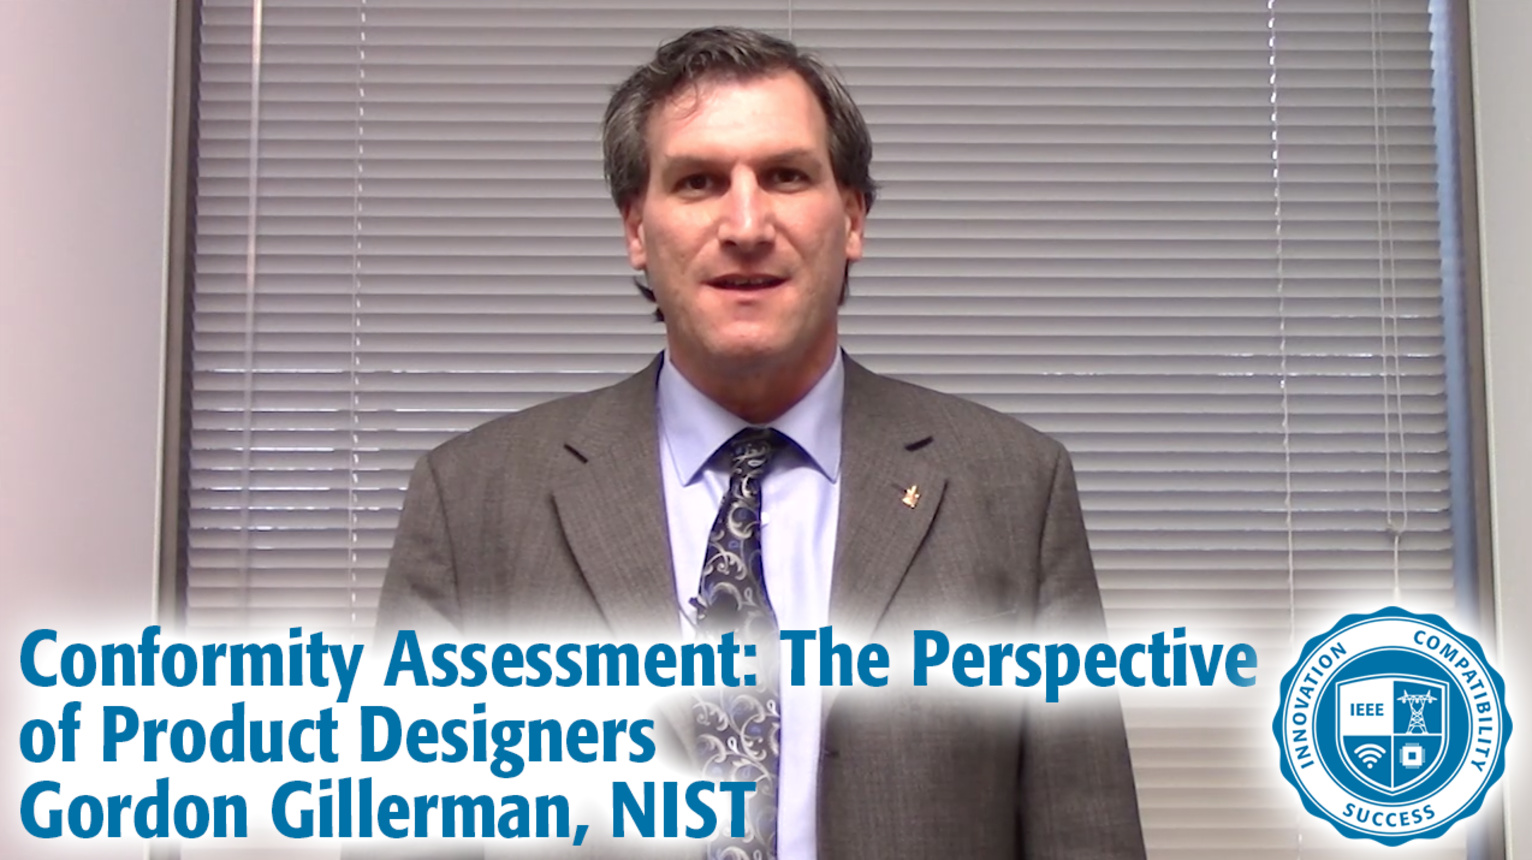 Conformity Assessment: The Perspective of Product Designers - Gordon Gillerman, Director, Standards Coordination Office, NIST